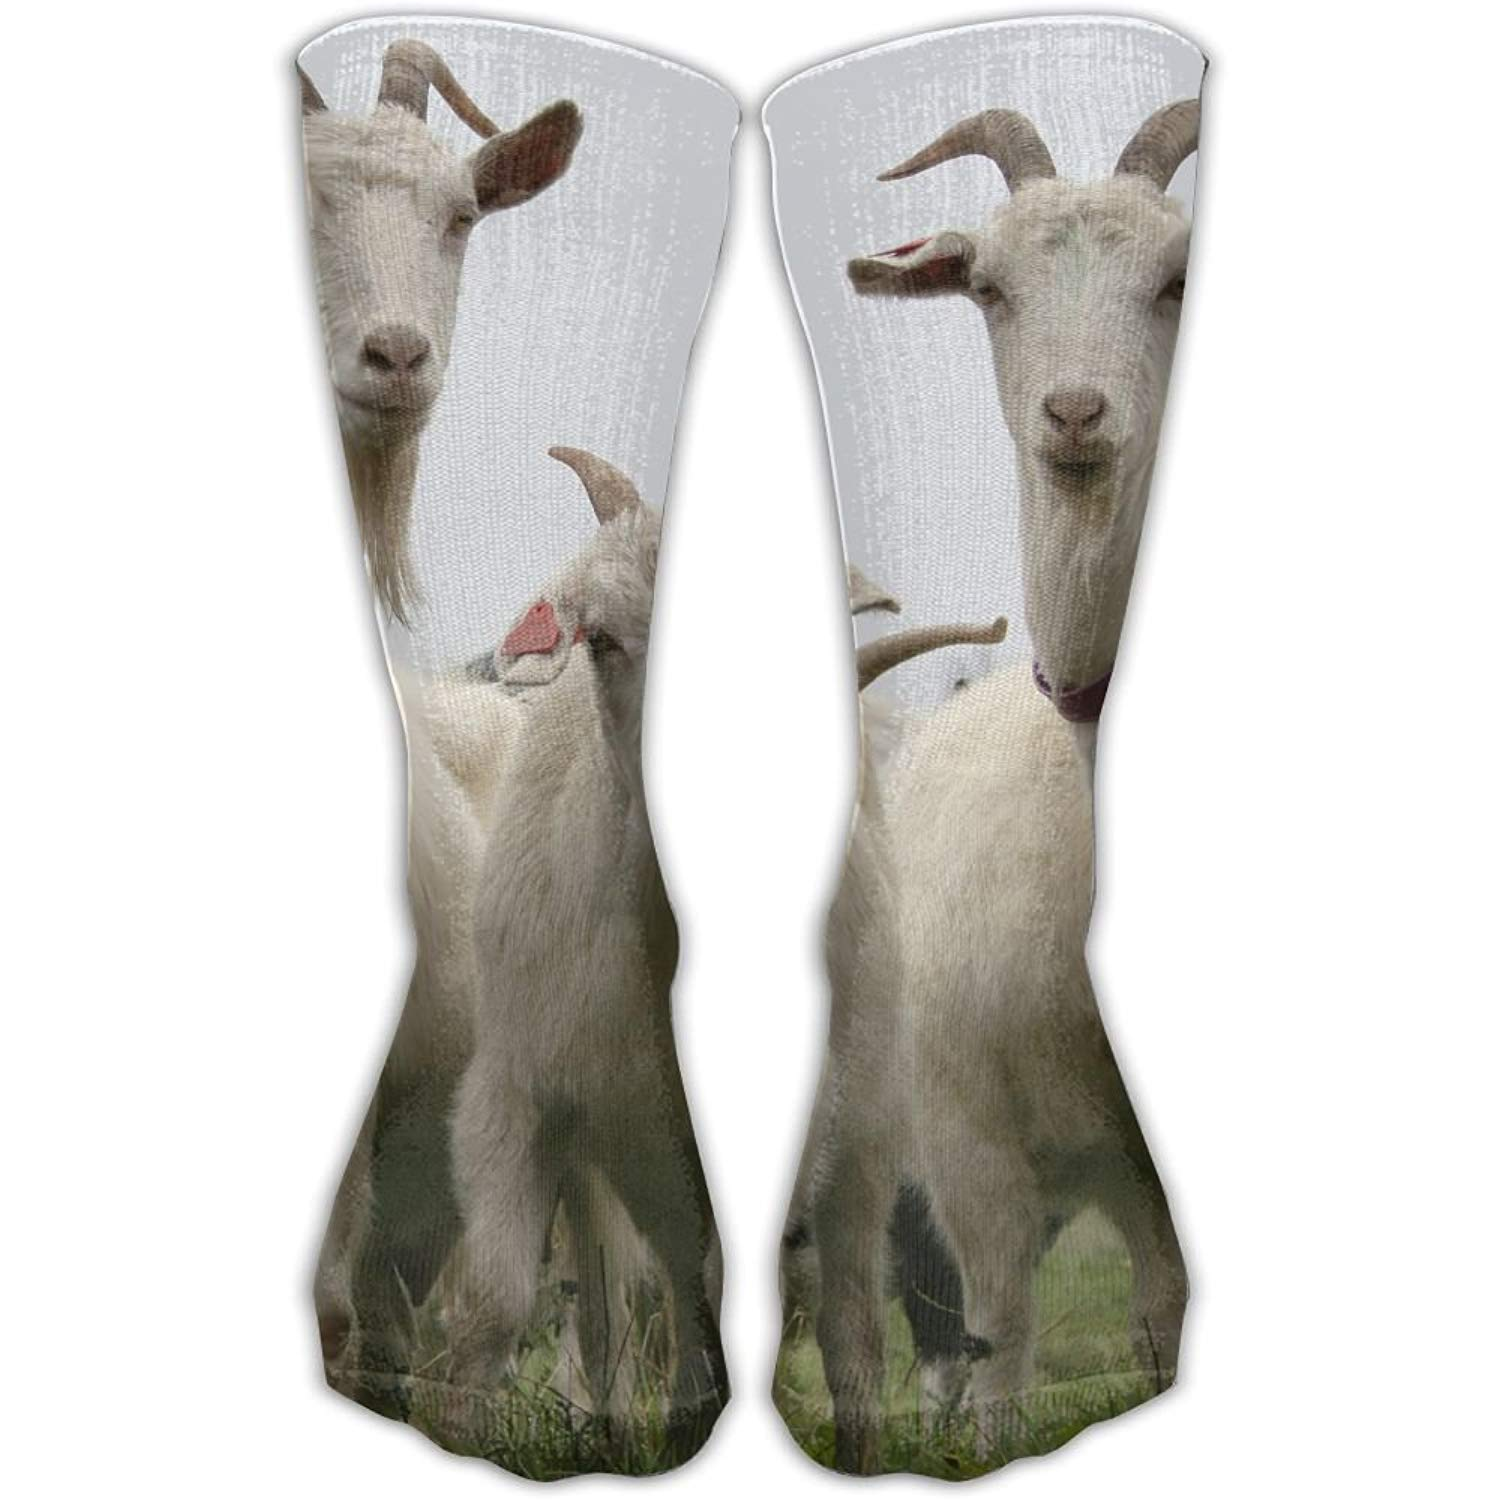 ETcRe Unisex 3 Goat Fashion Crew Sock Athletic Ankle Dress Sock One Size